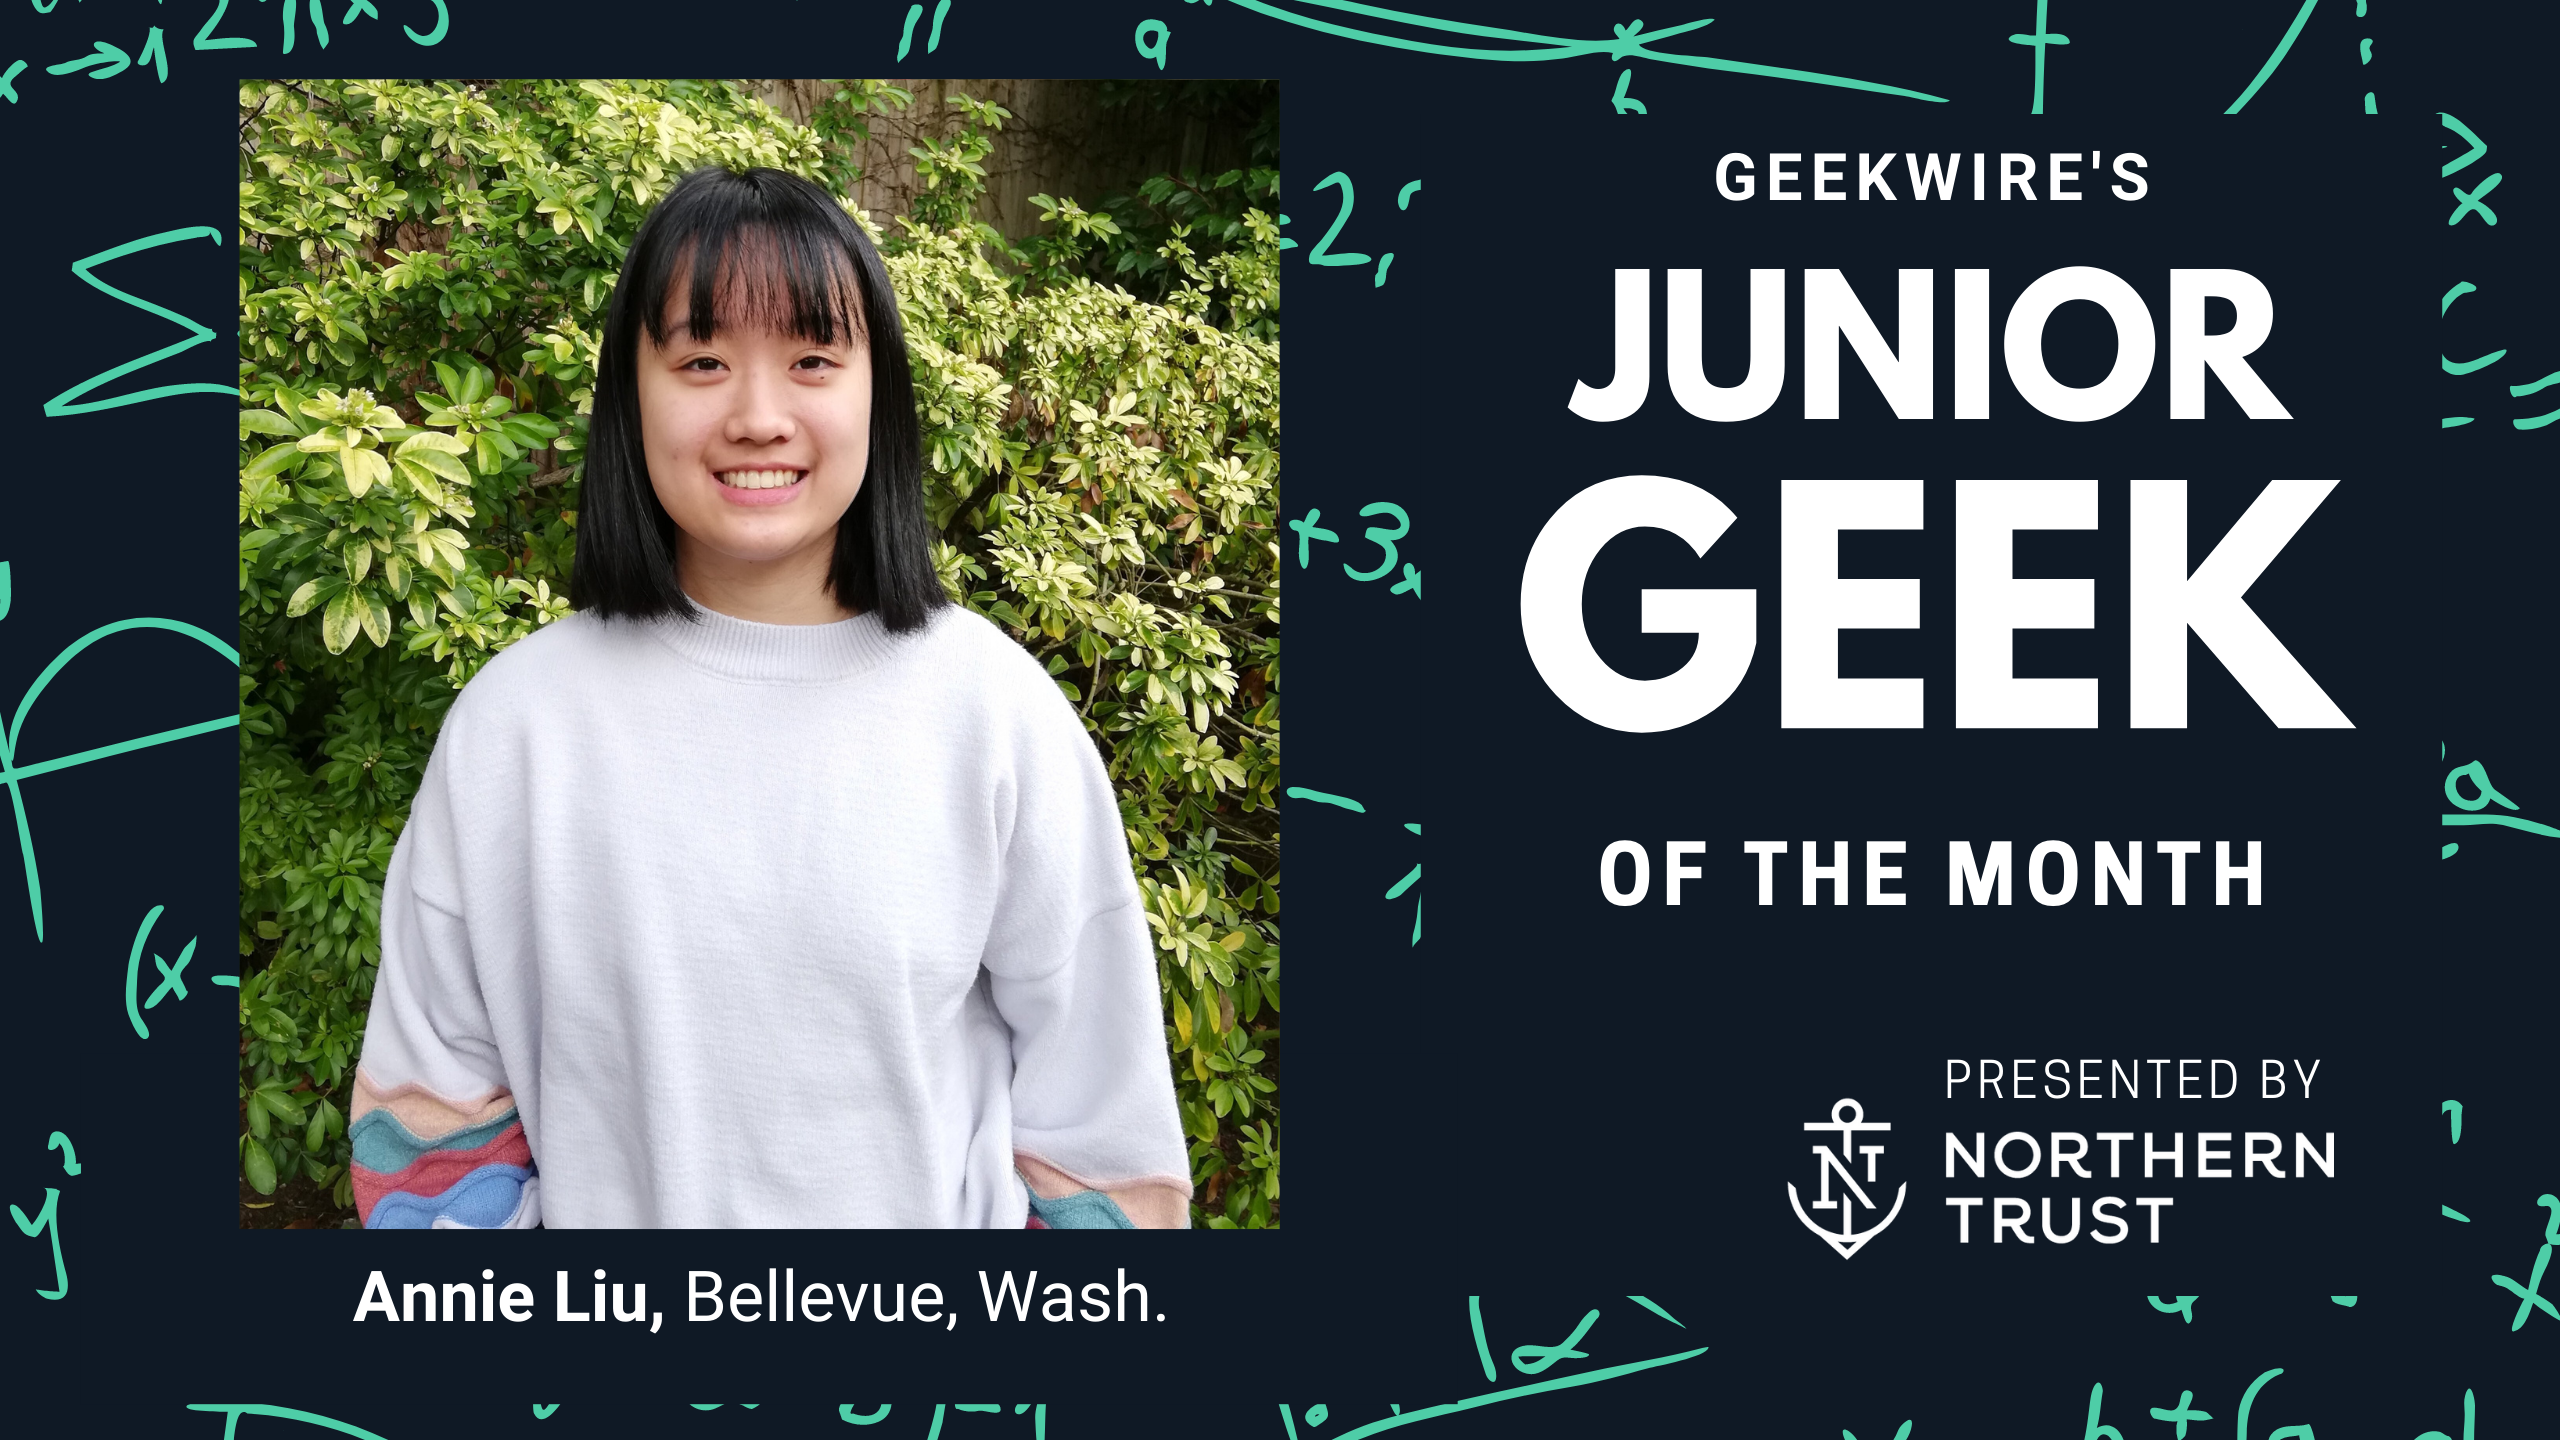 www.geekwire.com: Junior Geek of the Month: Annie Liu's love for code and communication translates to bright tech future